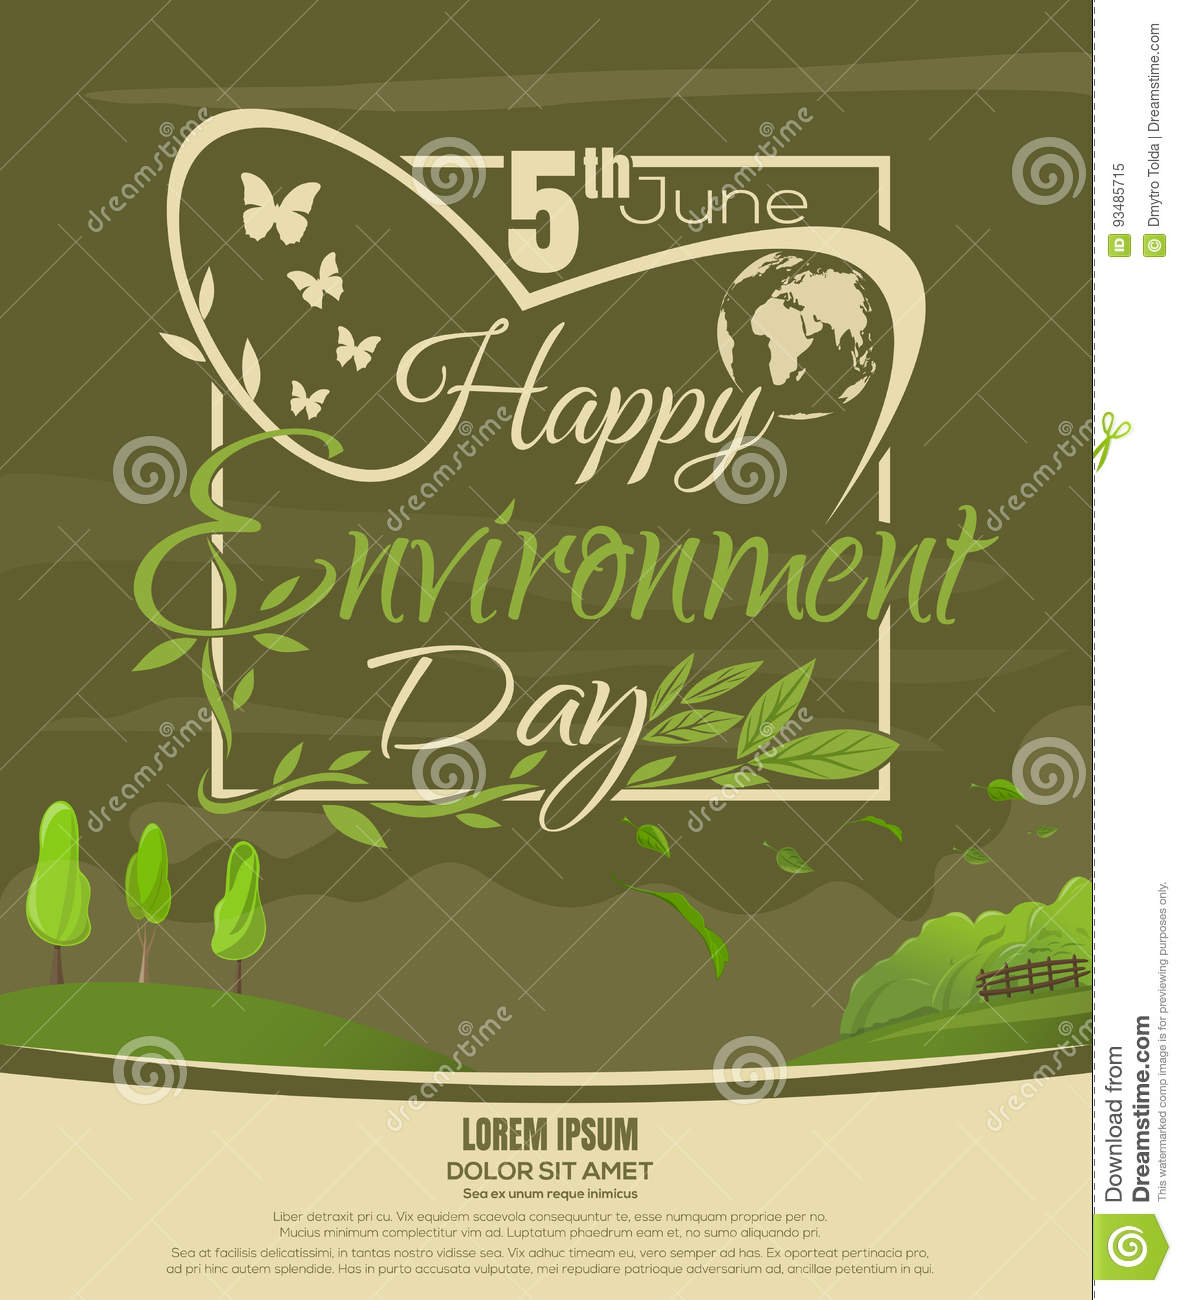 Poster design environment day - World Environment Day Poster Design 5 June